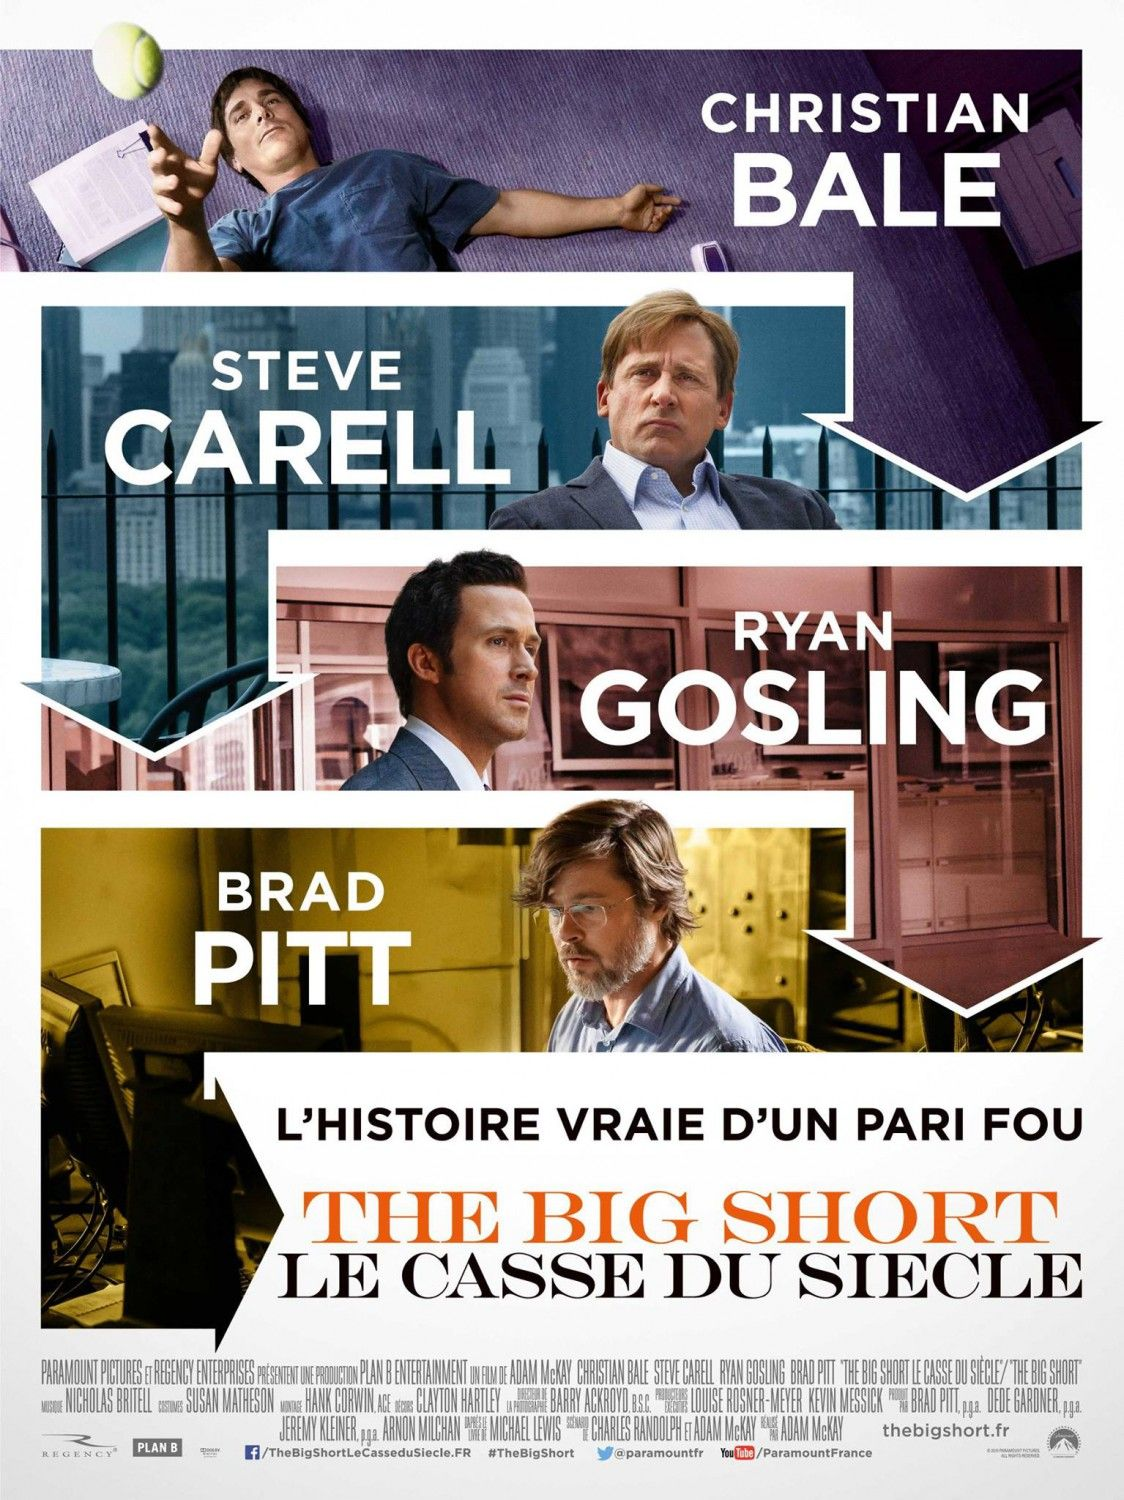 The Big Short (2015)...Great movie, should get an Academy Award nomination for both the screenplay and for the performances. Scary to see the downward spiral that continues yet doesn't get addressed & dealt with due to corruption and thirst for power.